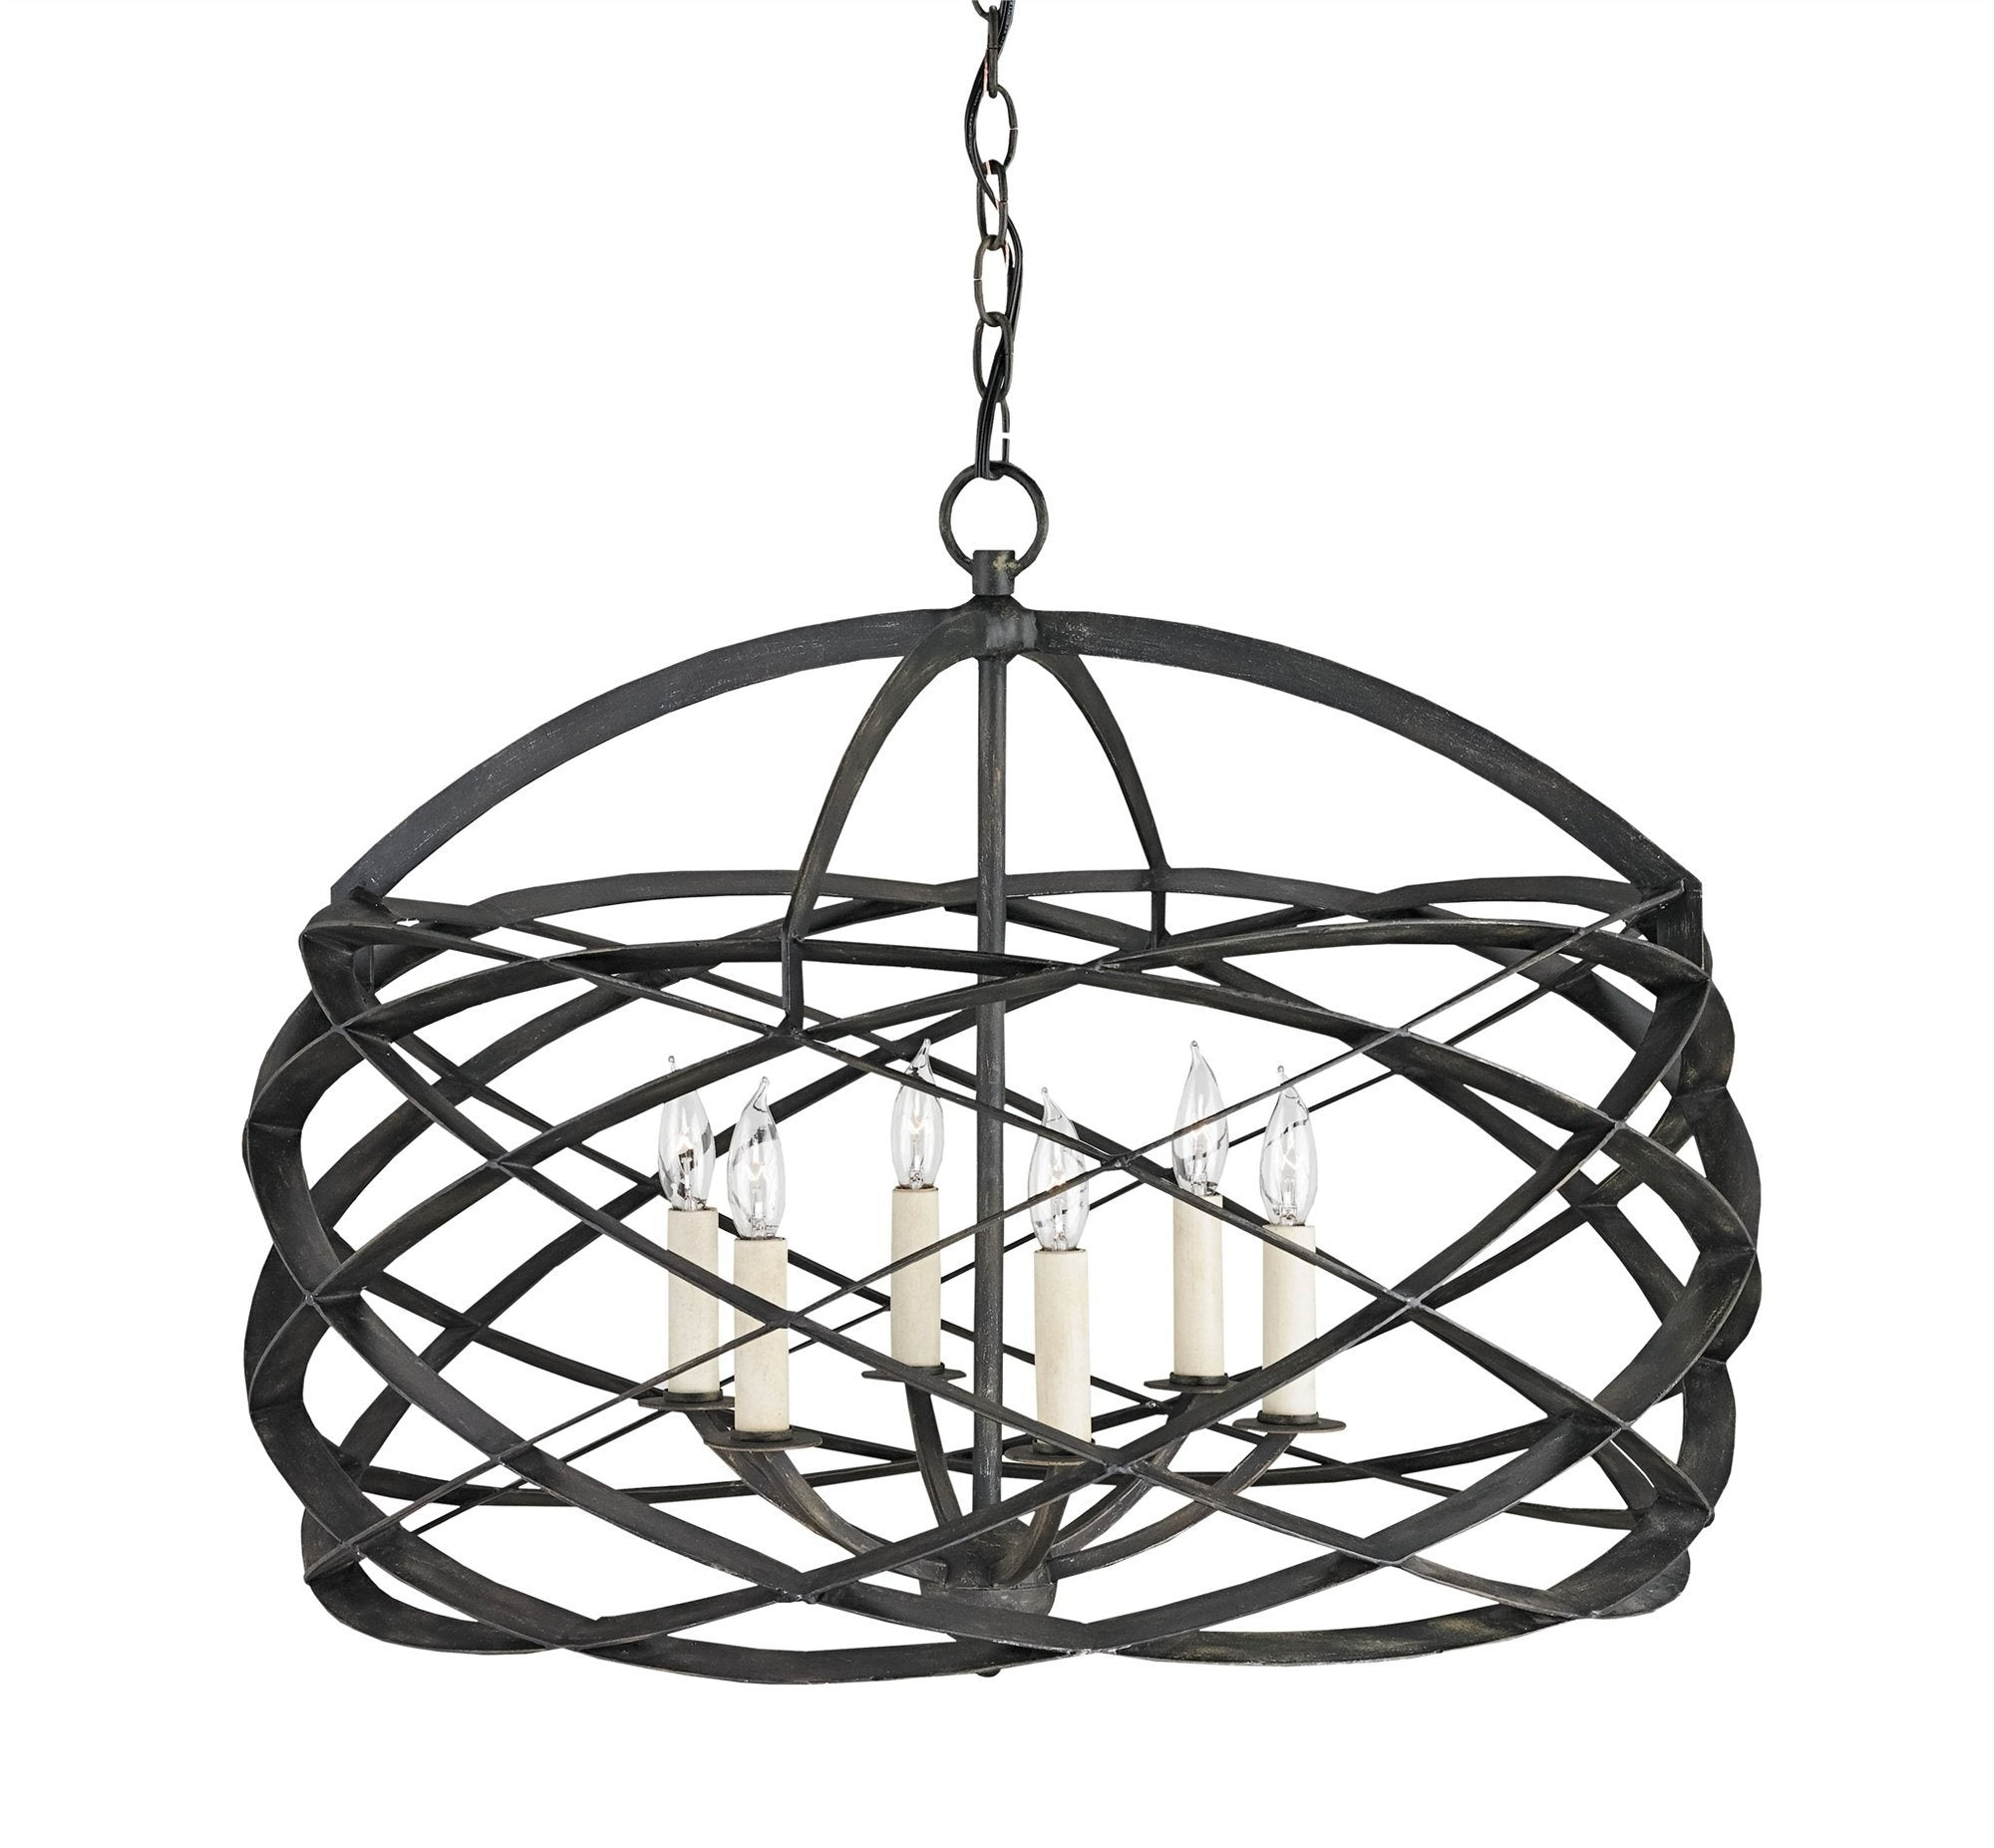 Currey and Company Horatio Chandelier 9729 - LOVECUP